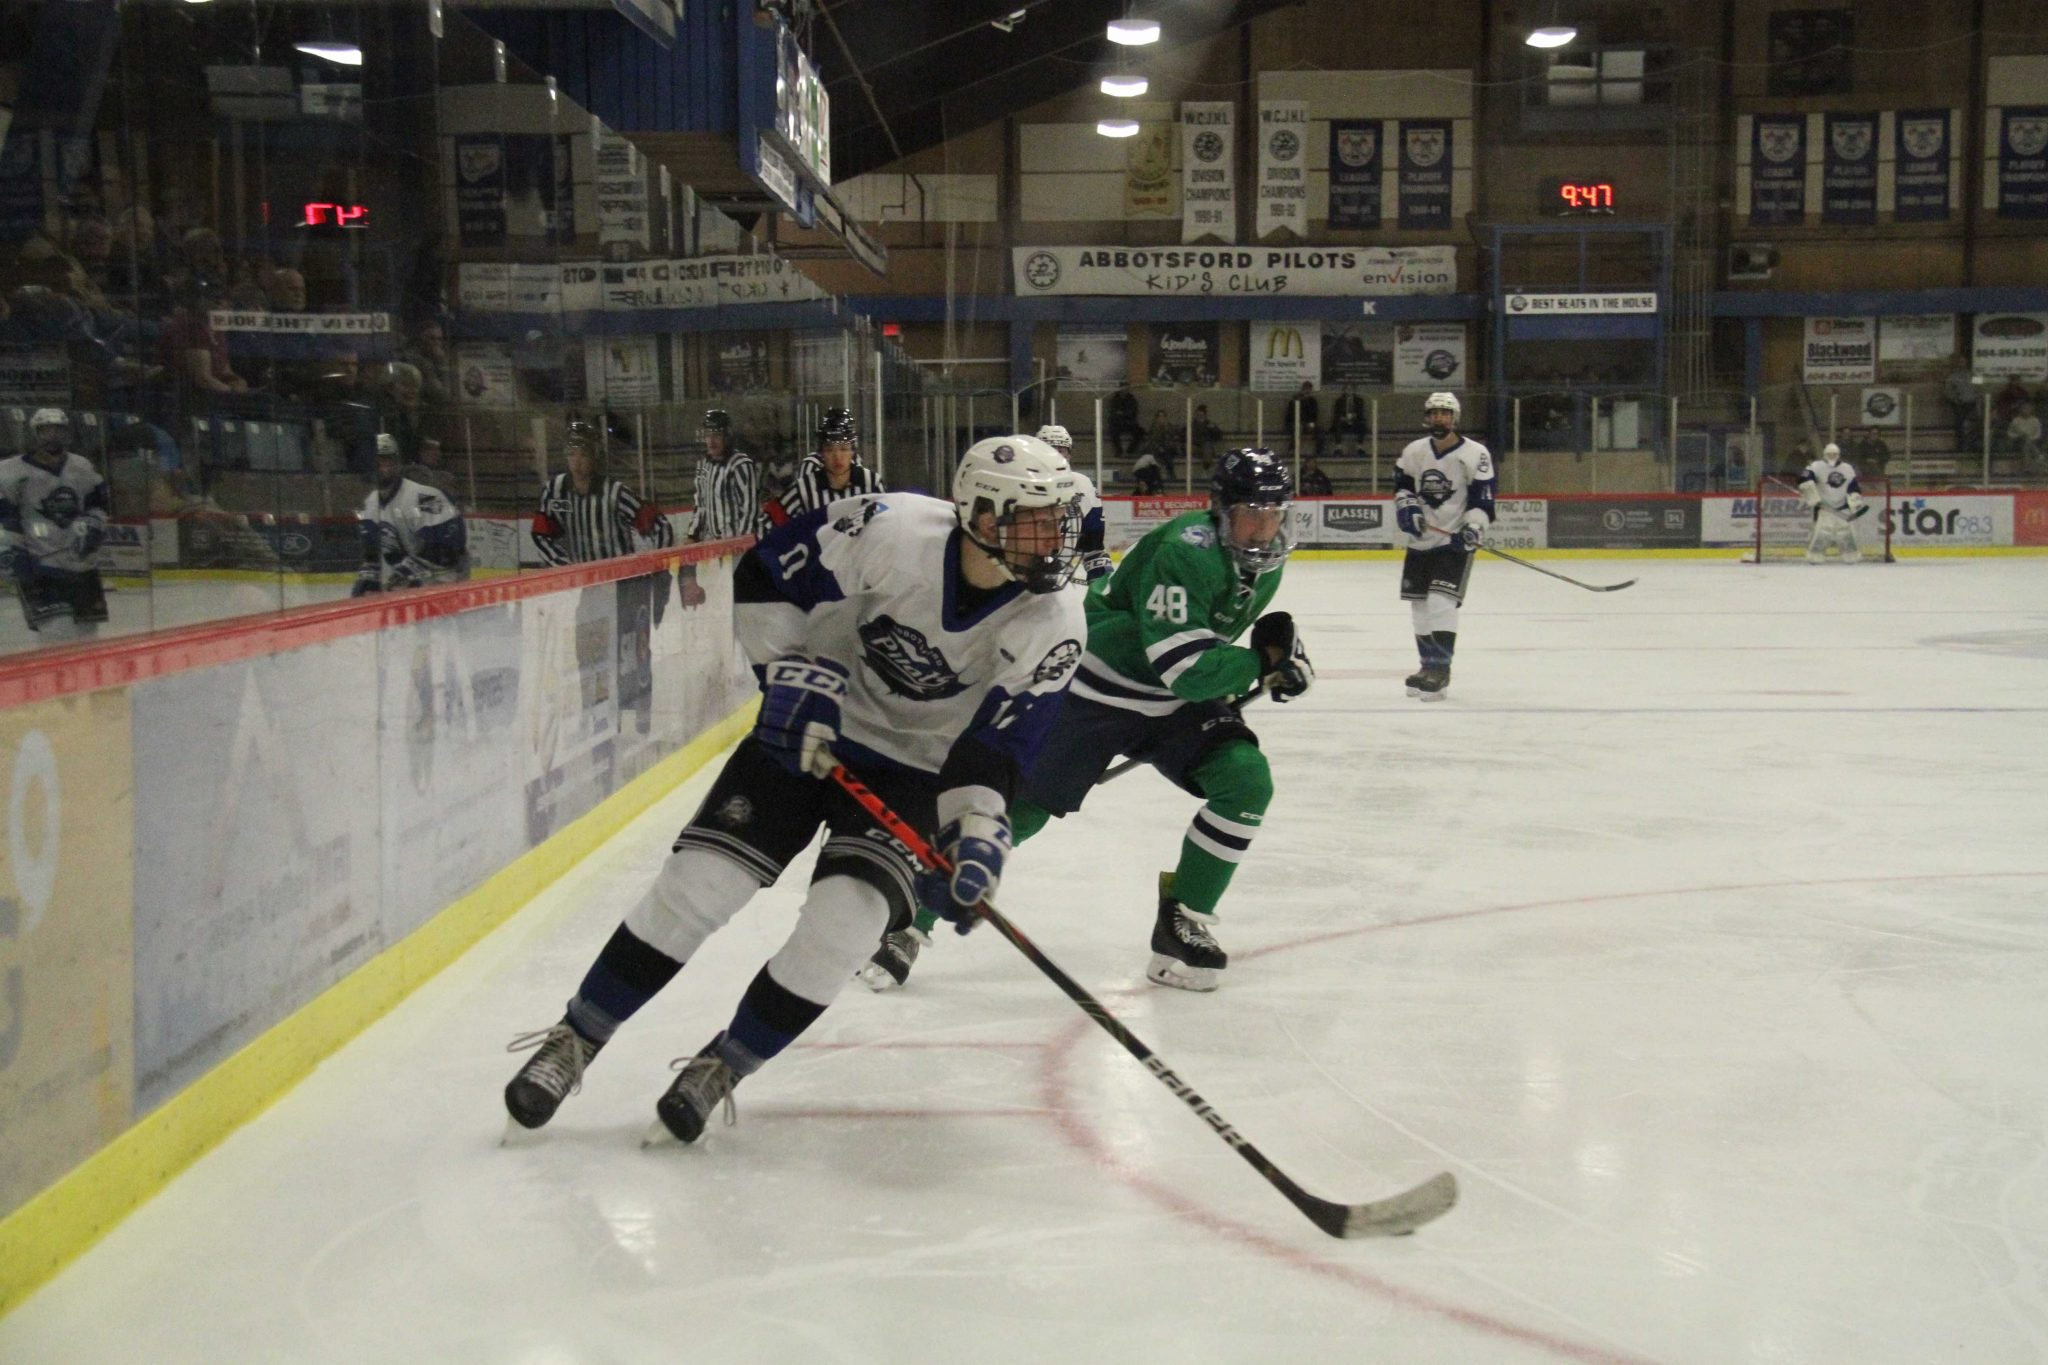 Pilots Take a Win Over the White Rock Whalers